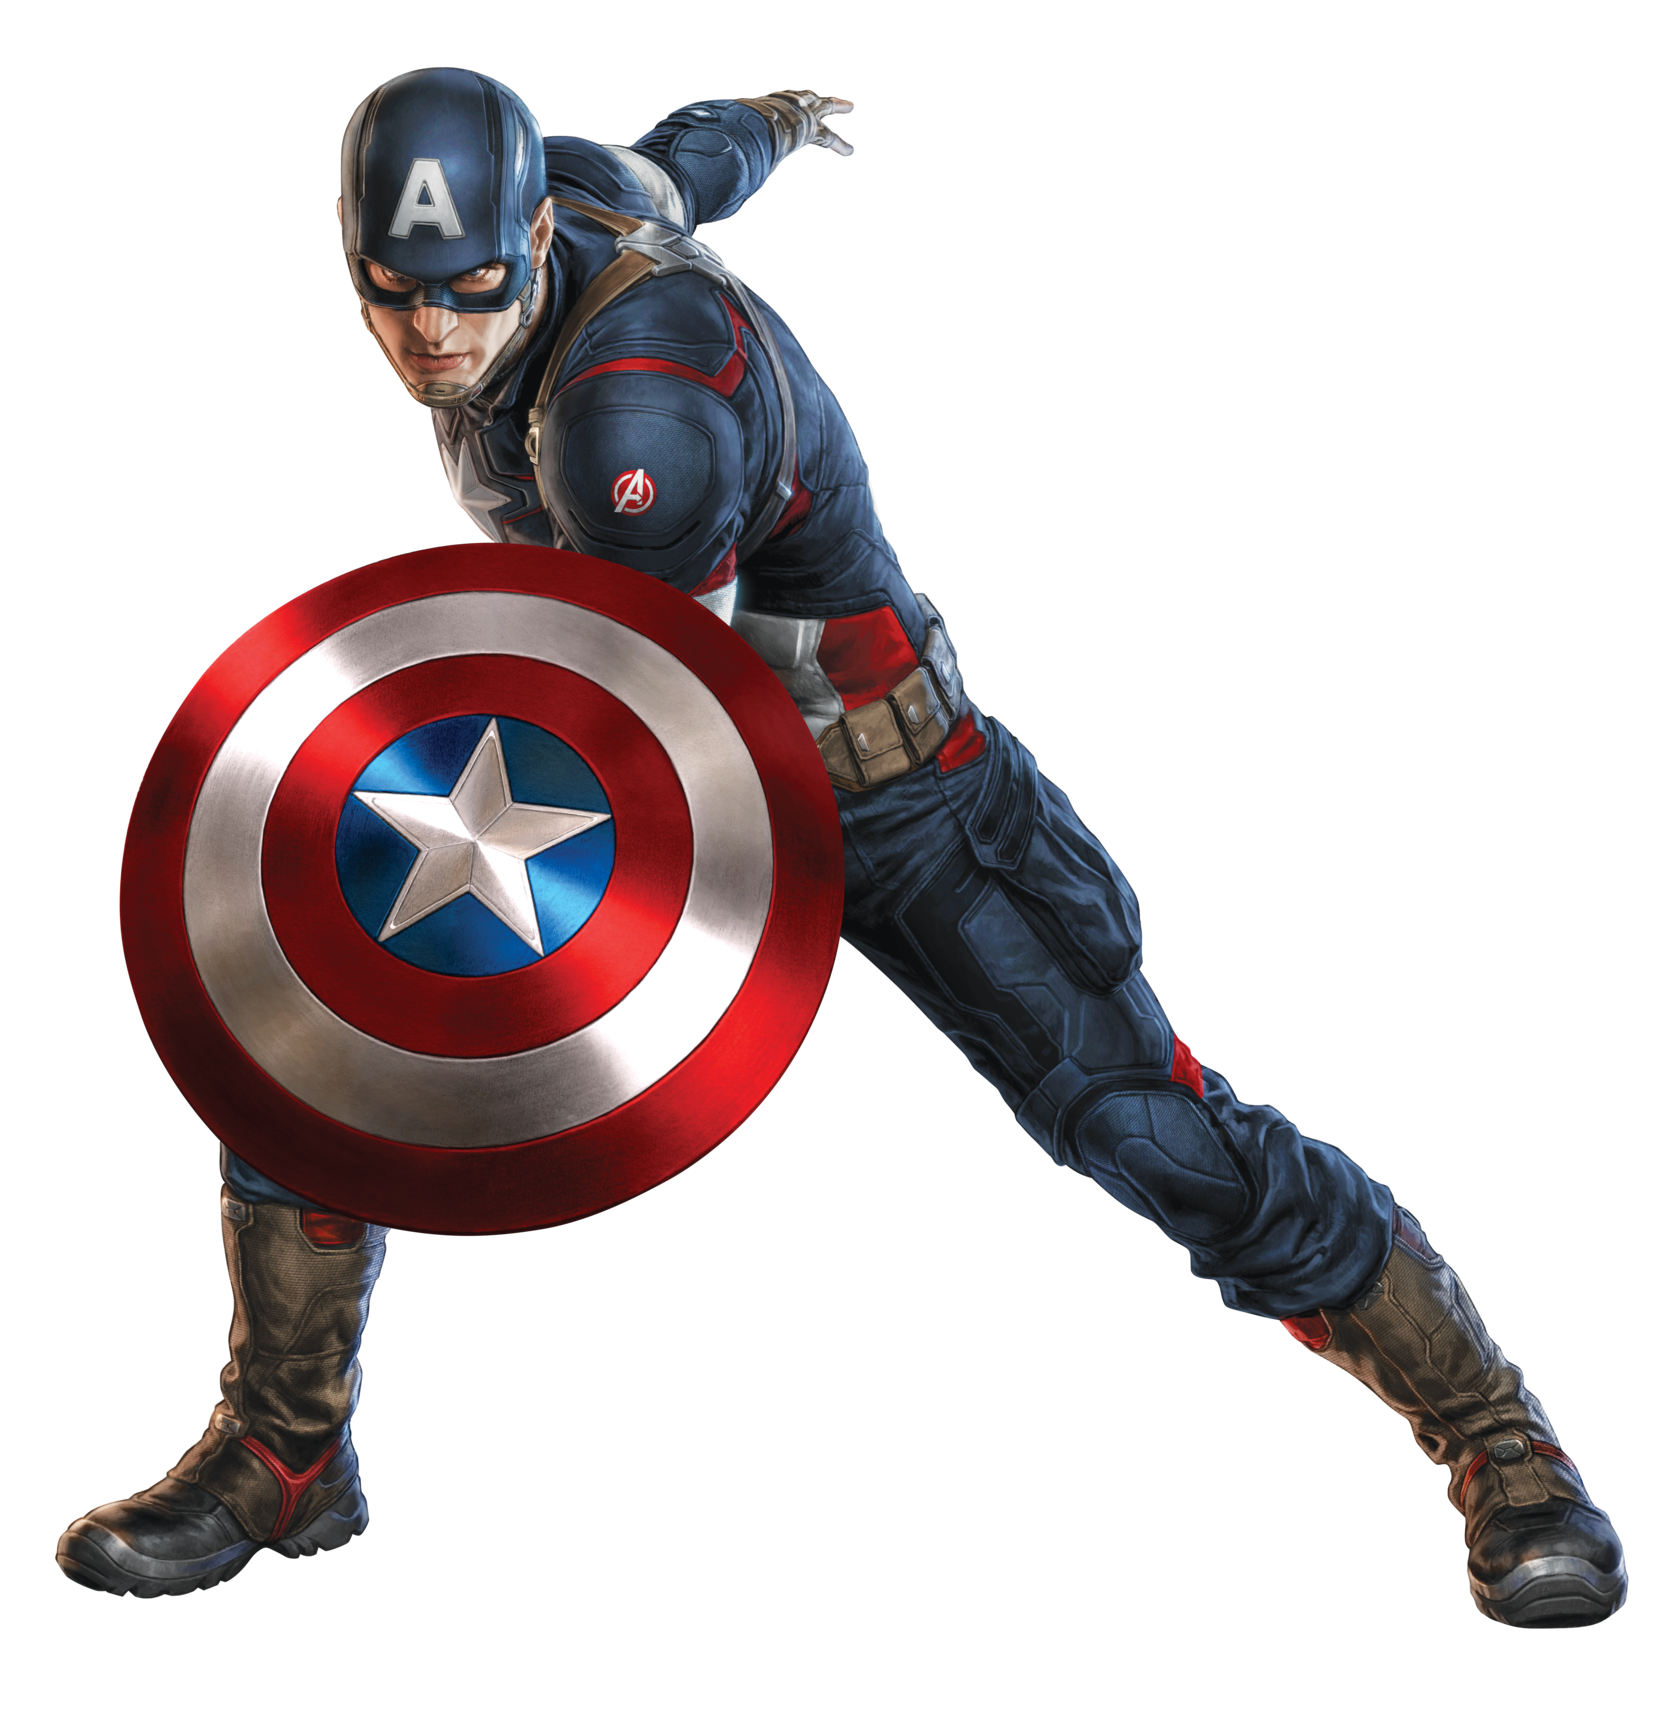 Png captain america. Image aou shield guard